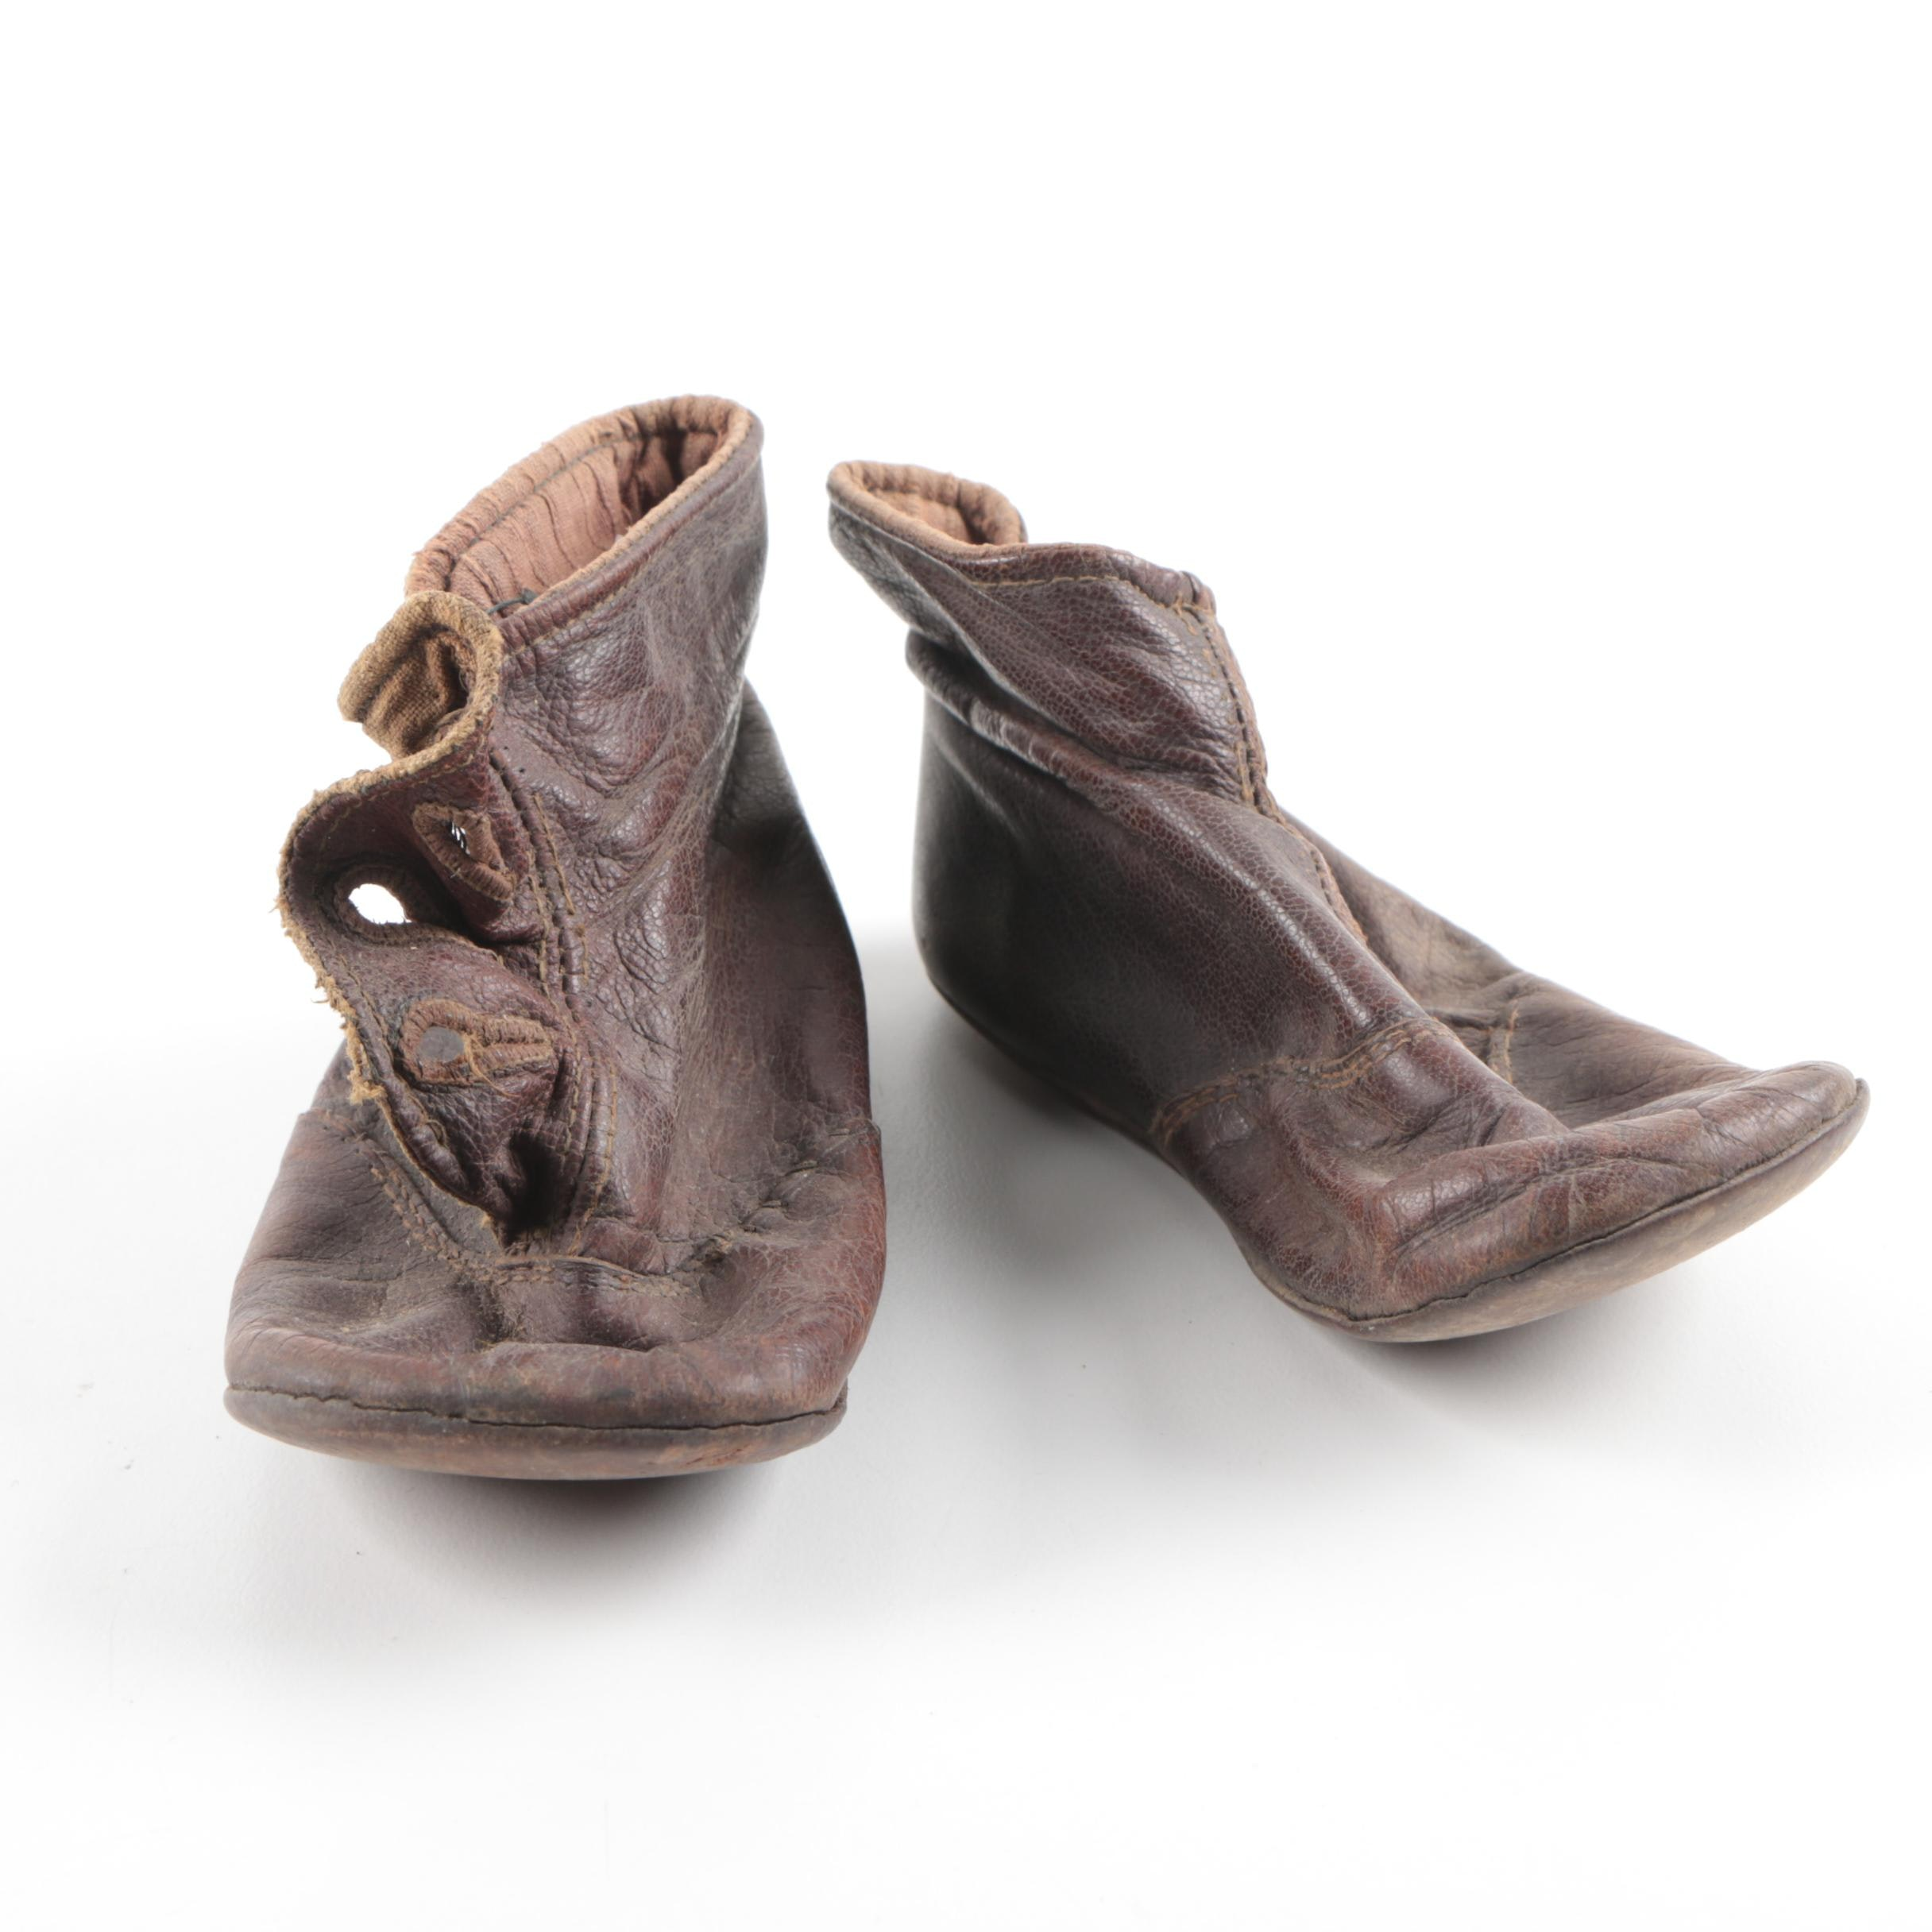 Antique Brown Leather Baby Boots